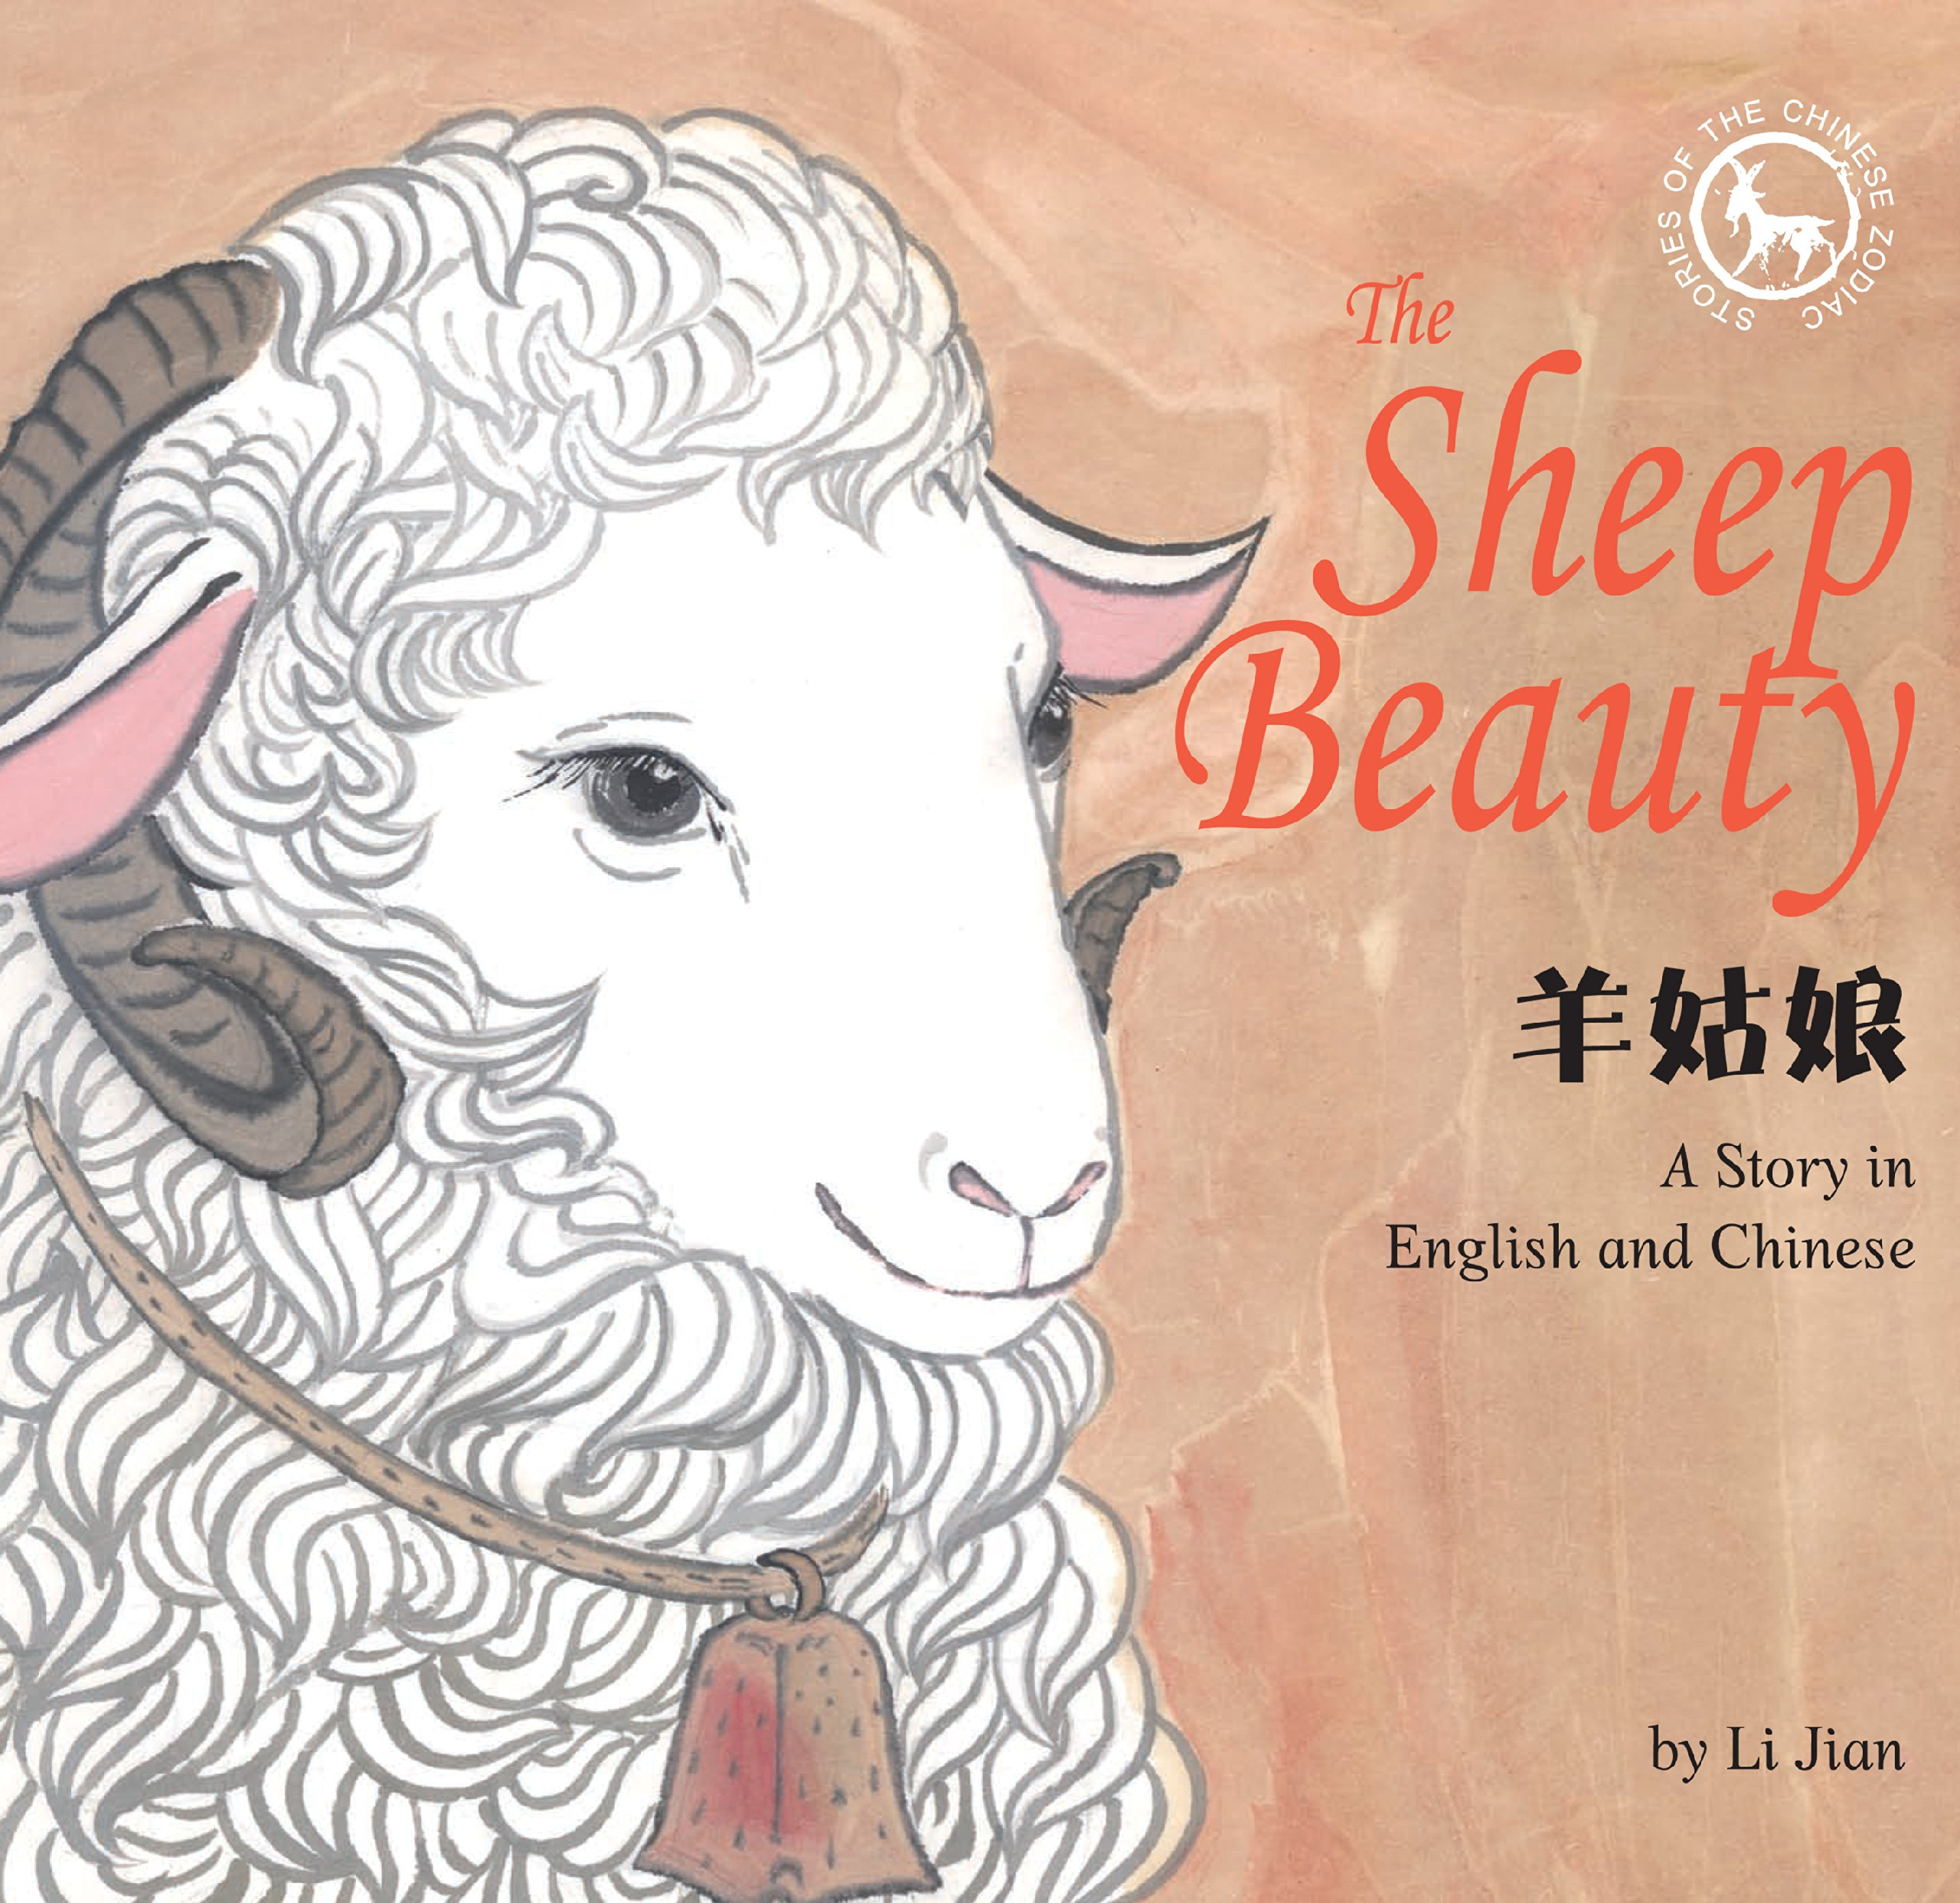 Download The Sheep Beauty: Stories of the Chinese Zodiac, A Story in English and Chinese PDF